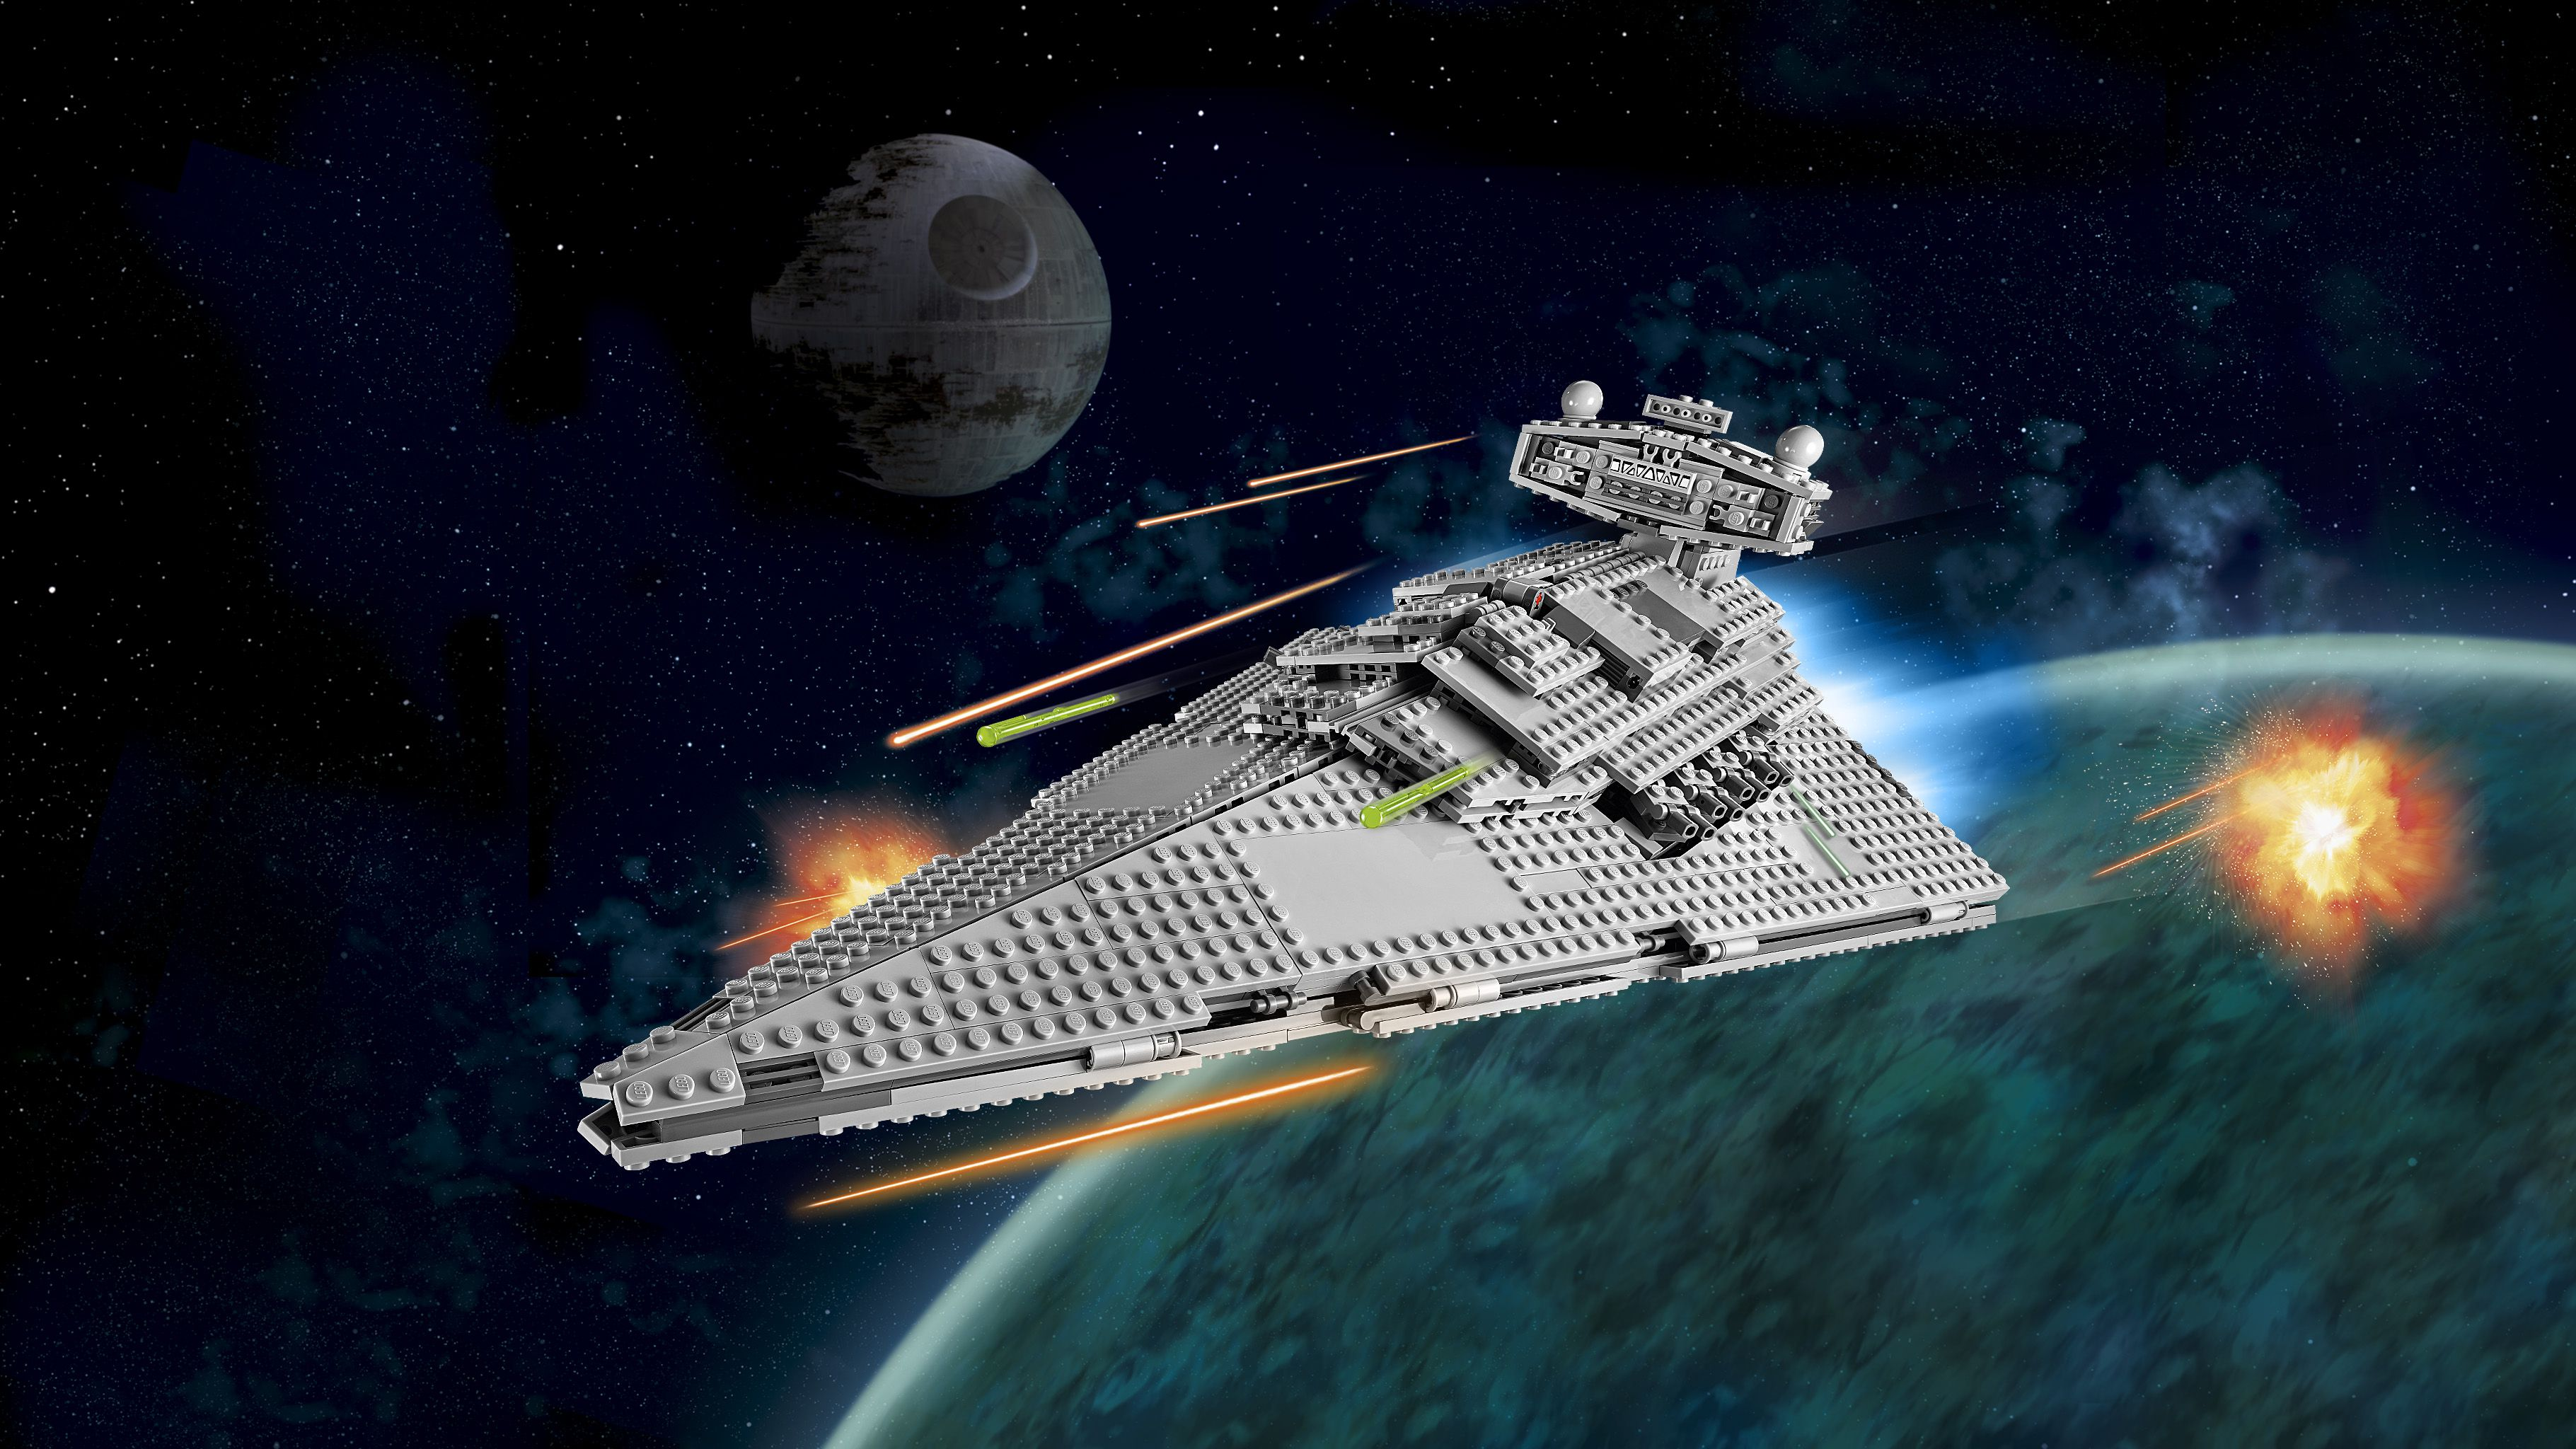 Lego star wars 75055 imperial star destroyer achat - Image star wars vaisseau ...